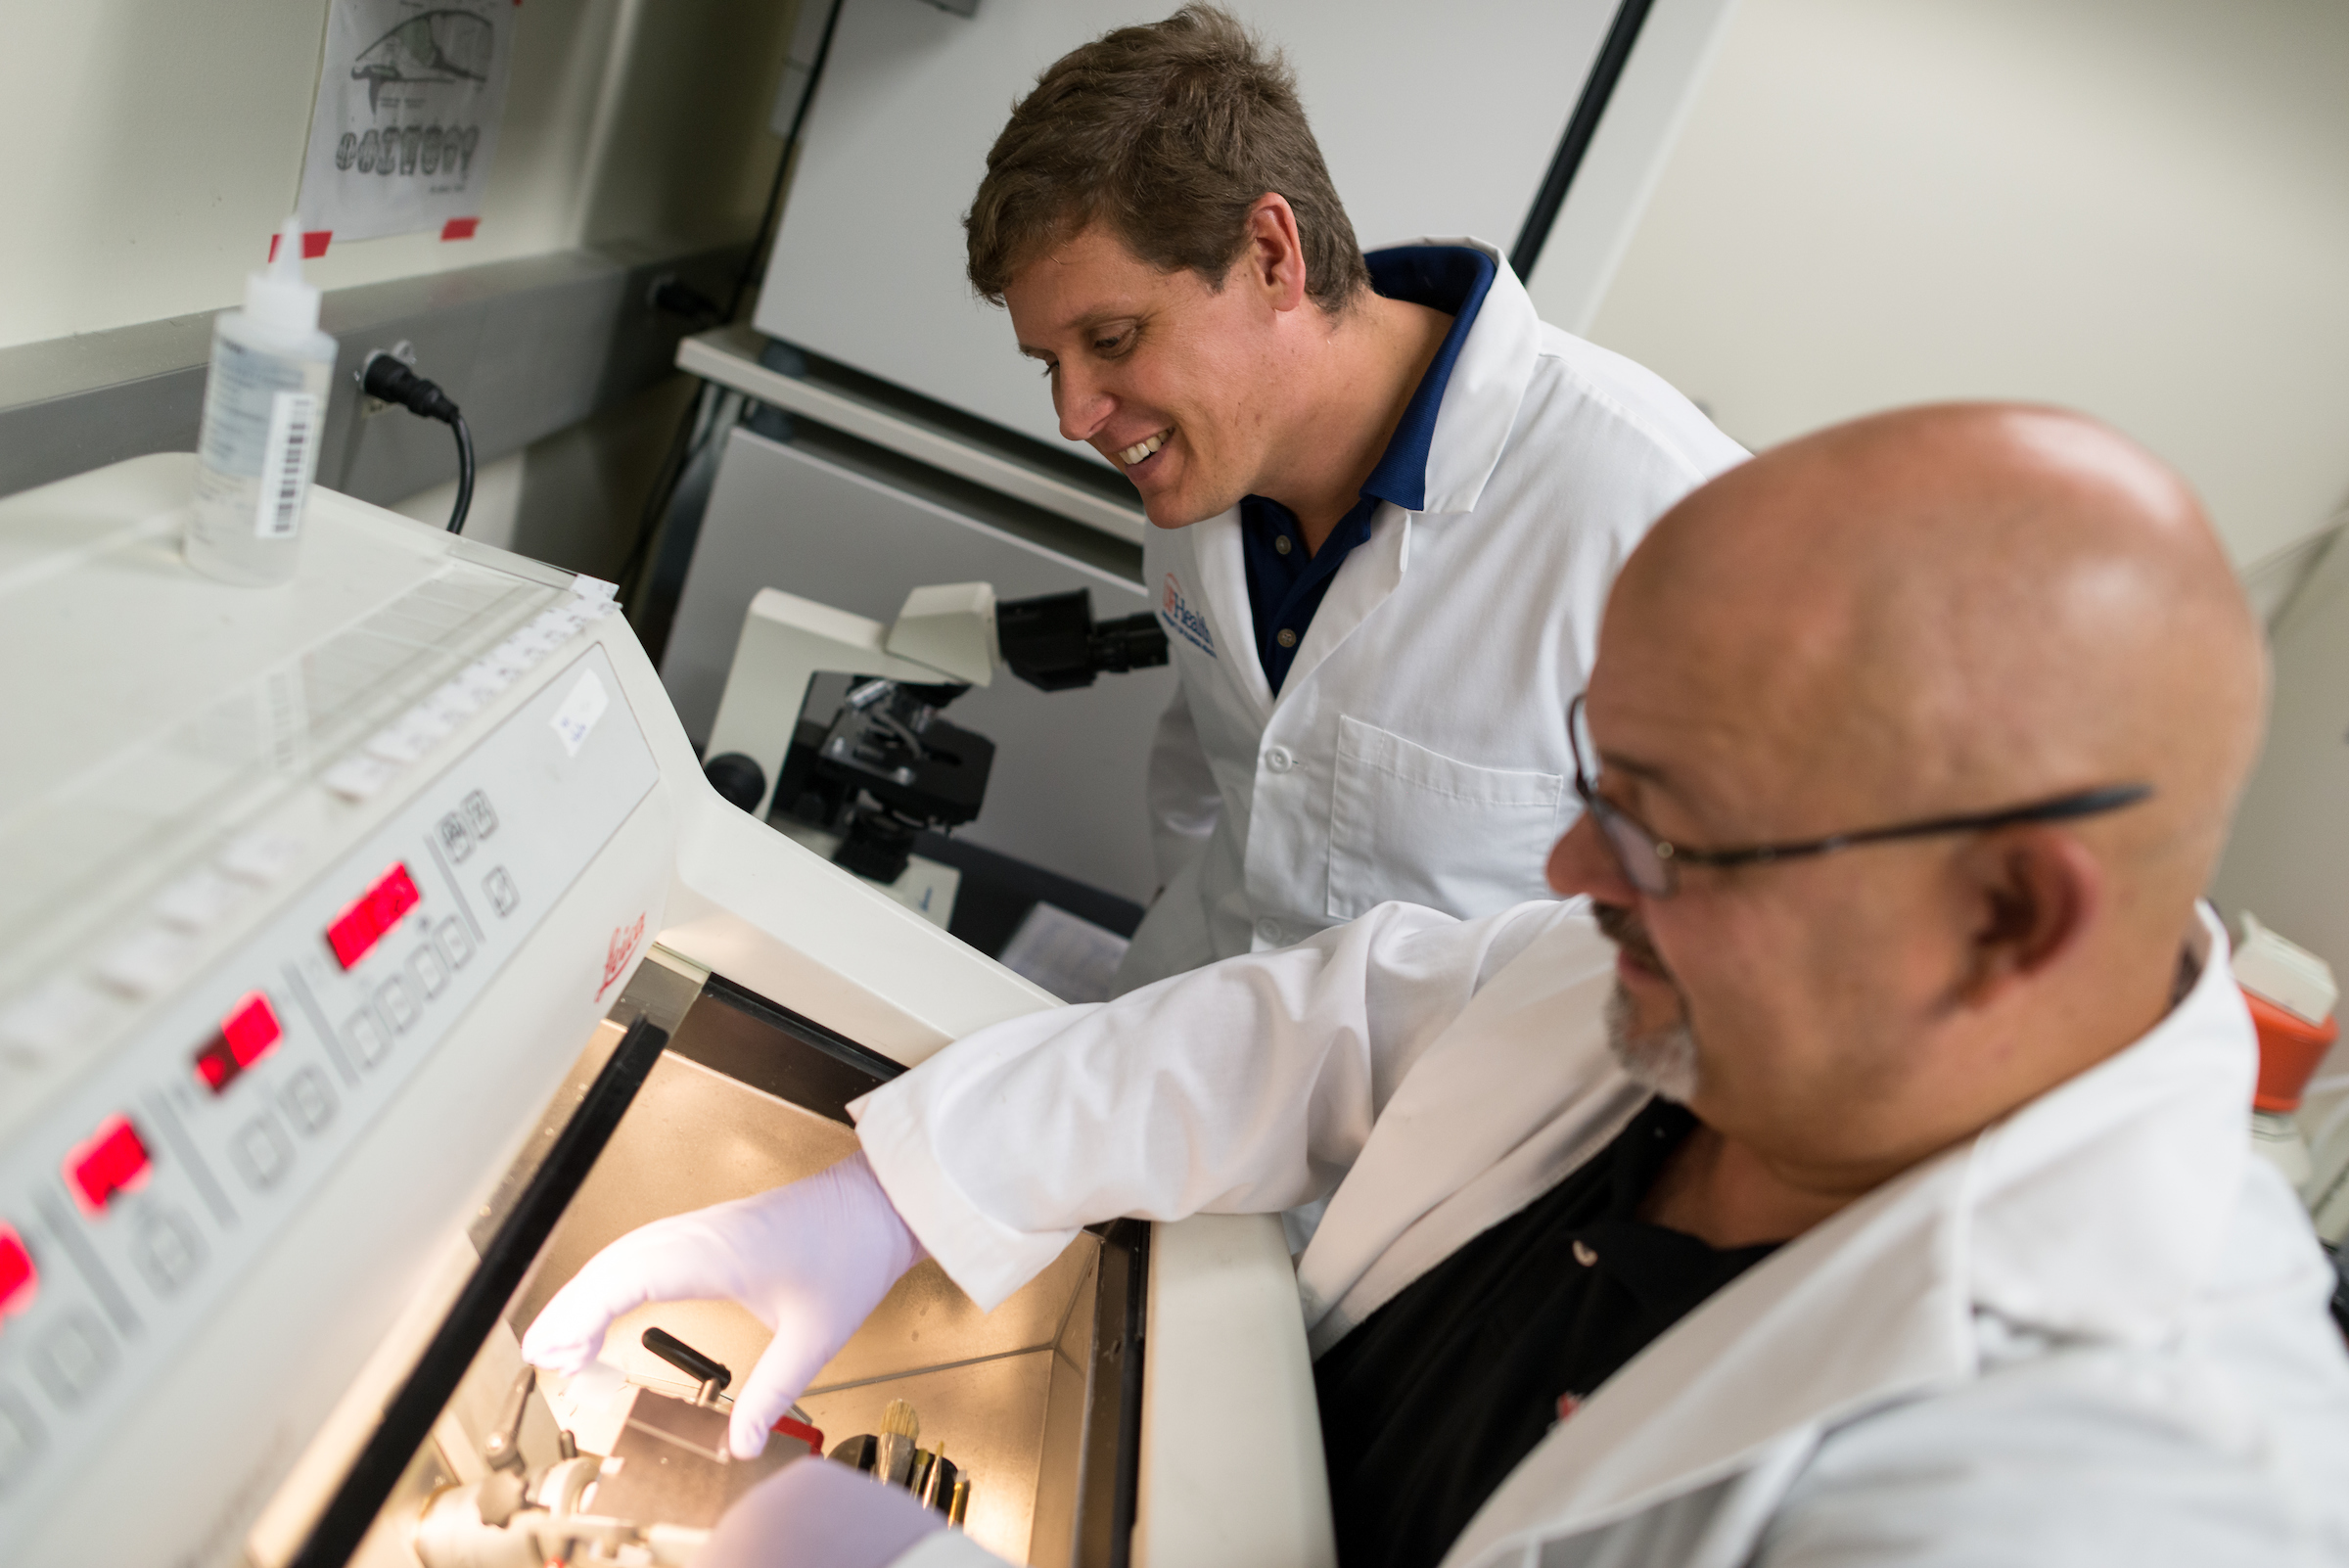 Jeremy McIntyre conducting research with colleagues in the lab